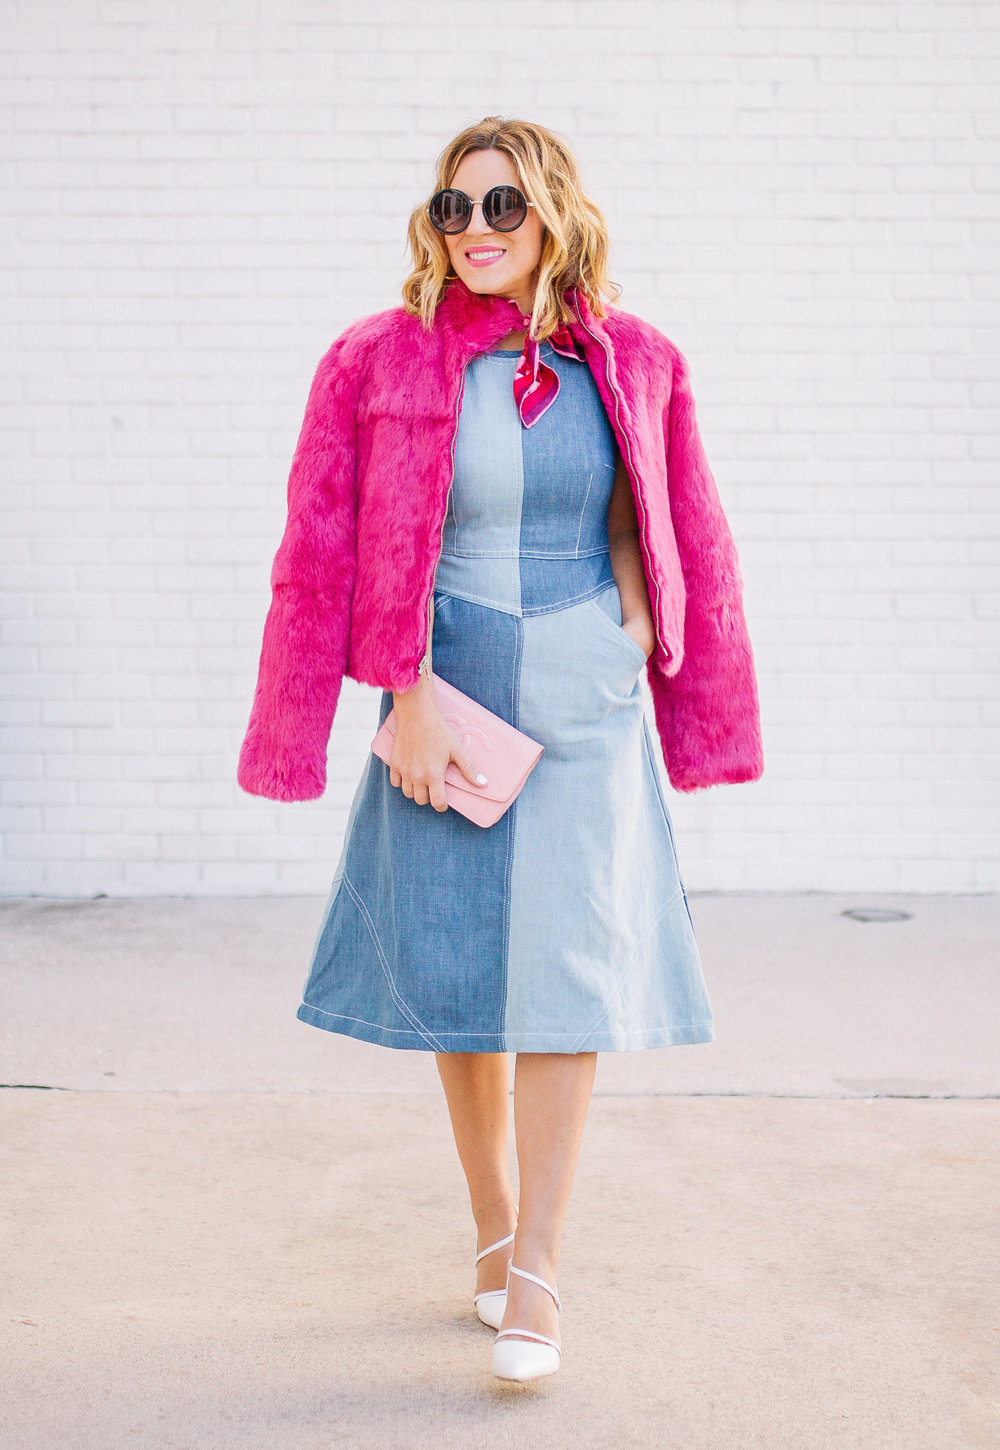 Chambray Dress with pink fur, pink scarf and pink sunglasses. 6.jpg